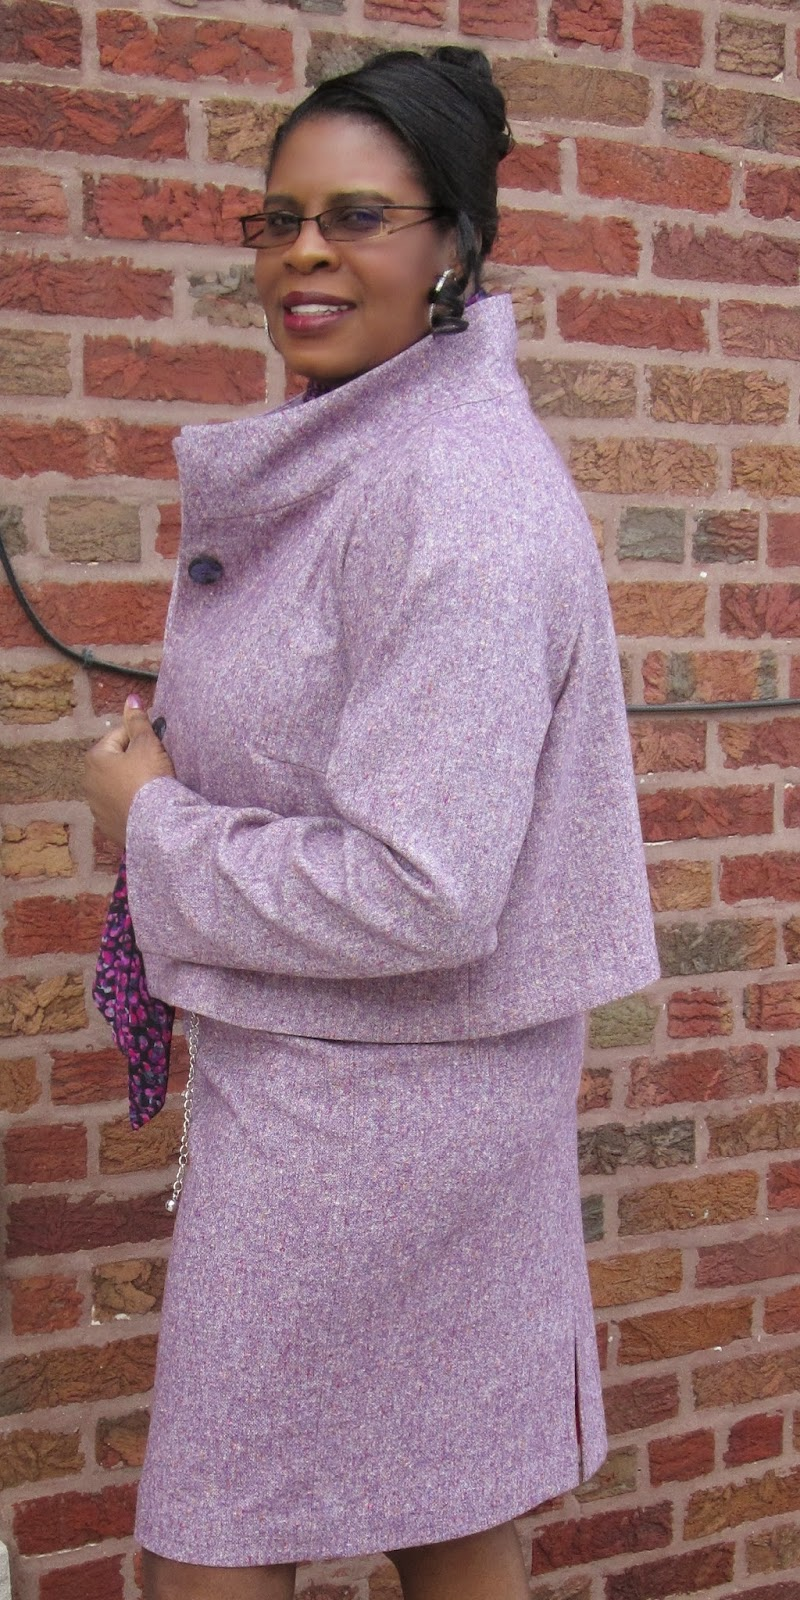 Women's suit made with purple tweed from MoodFabrics.com.